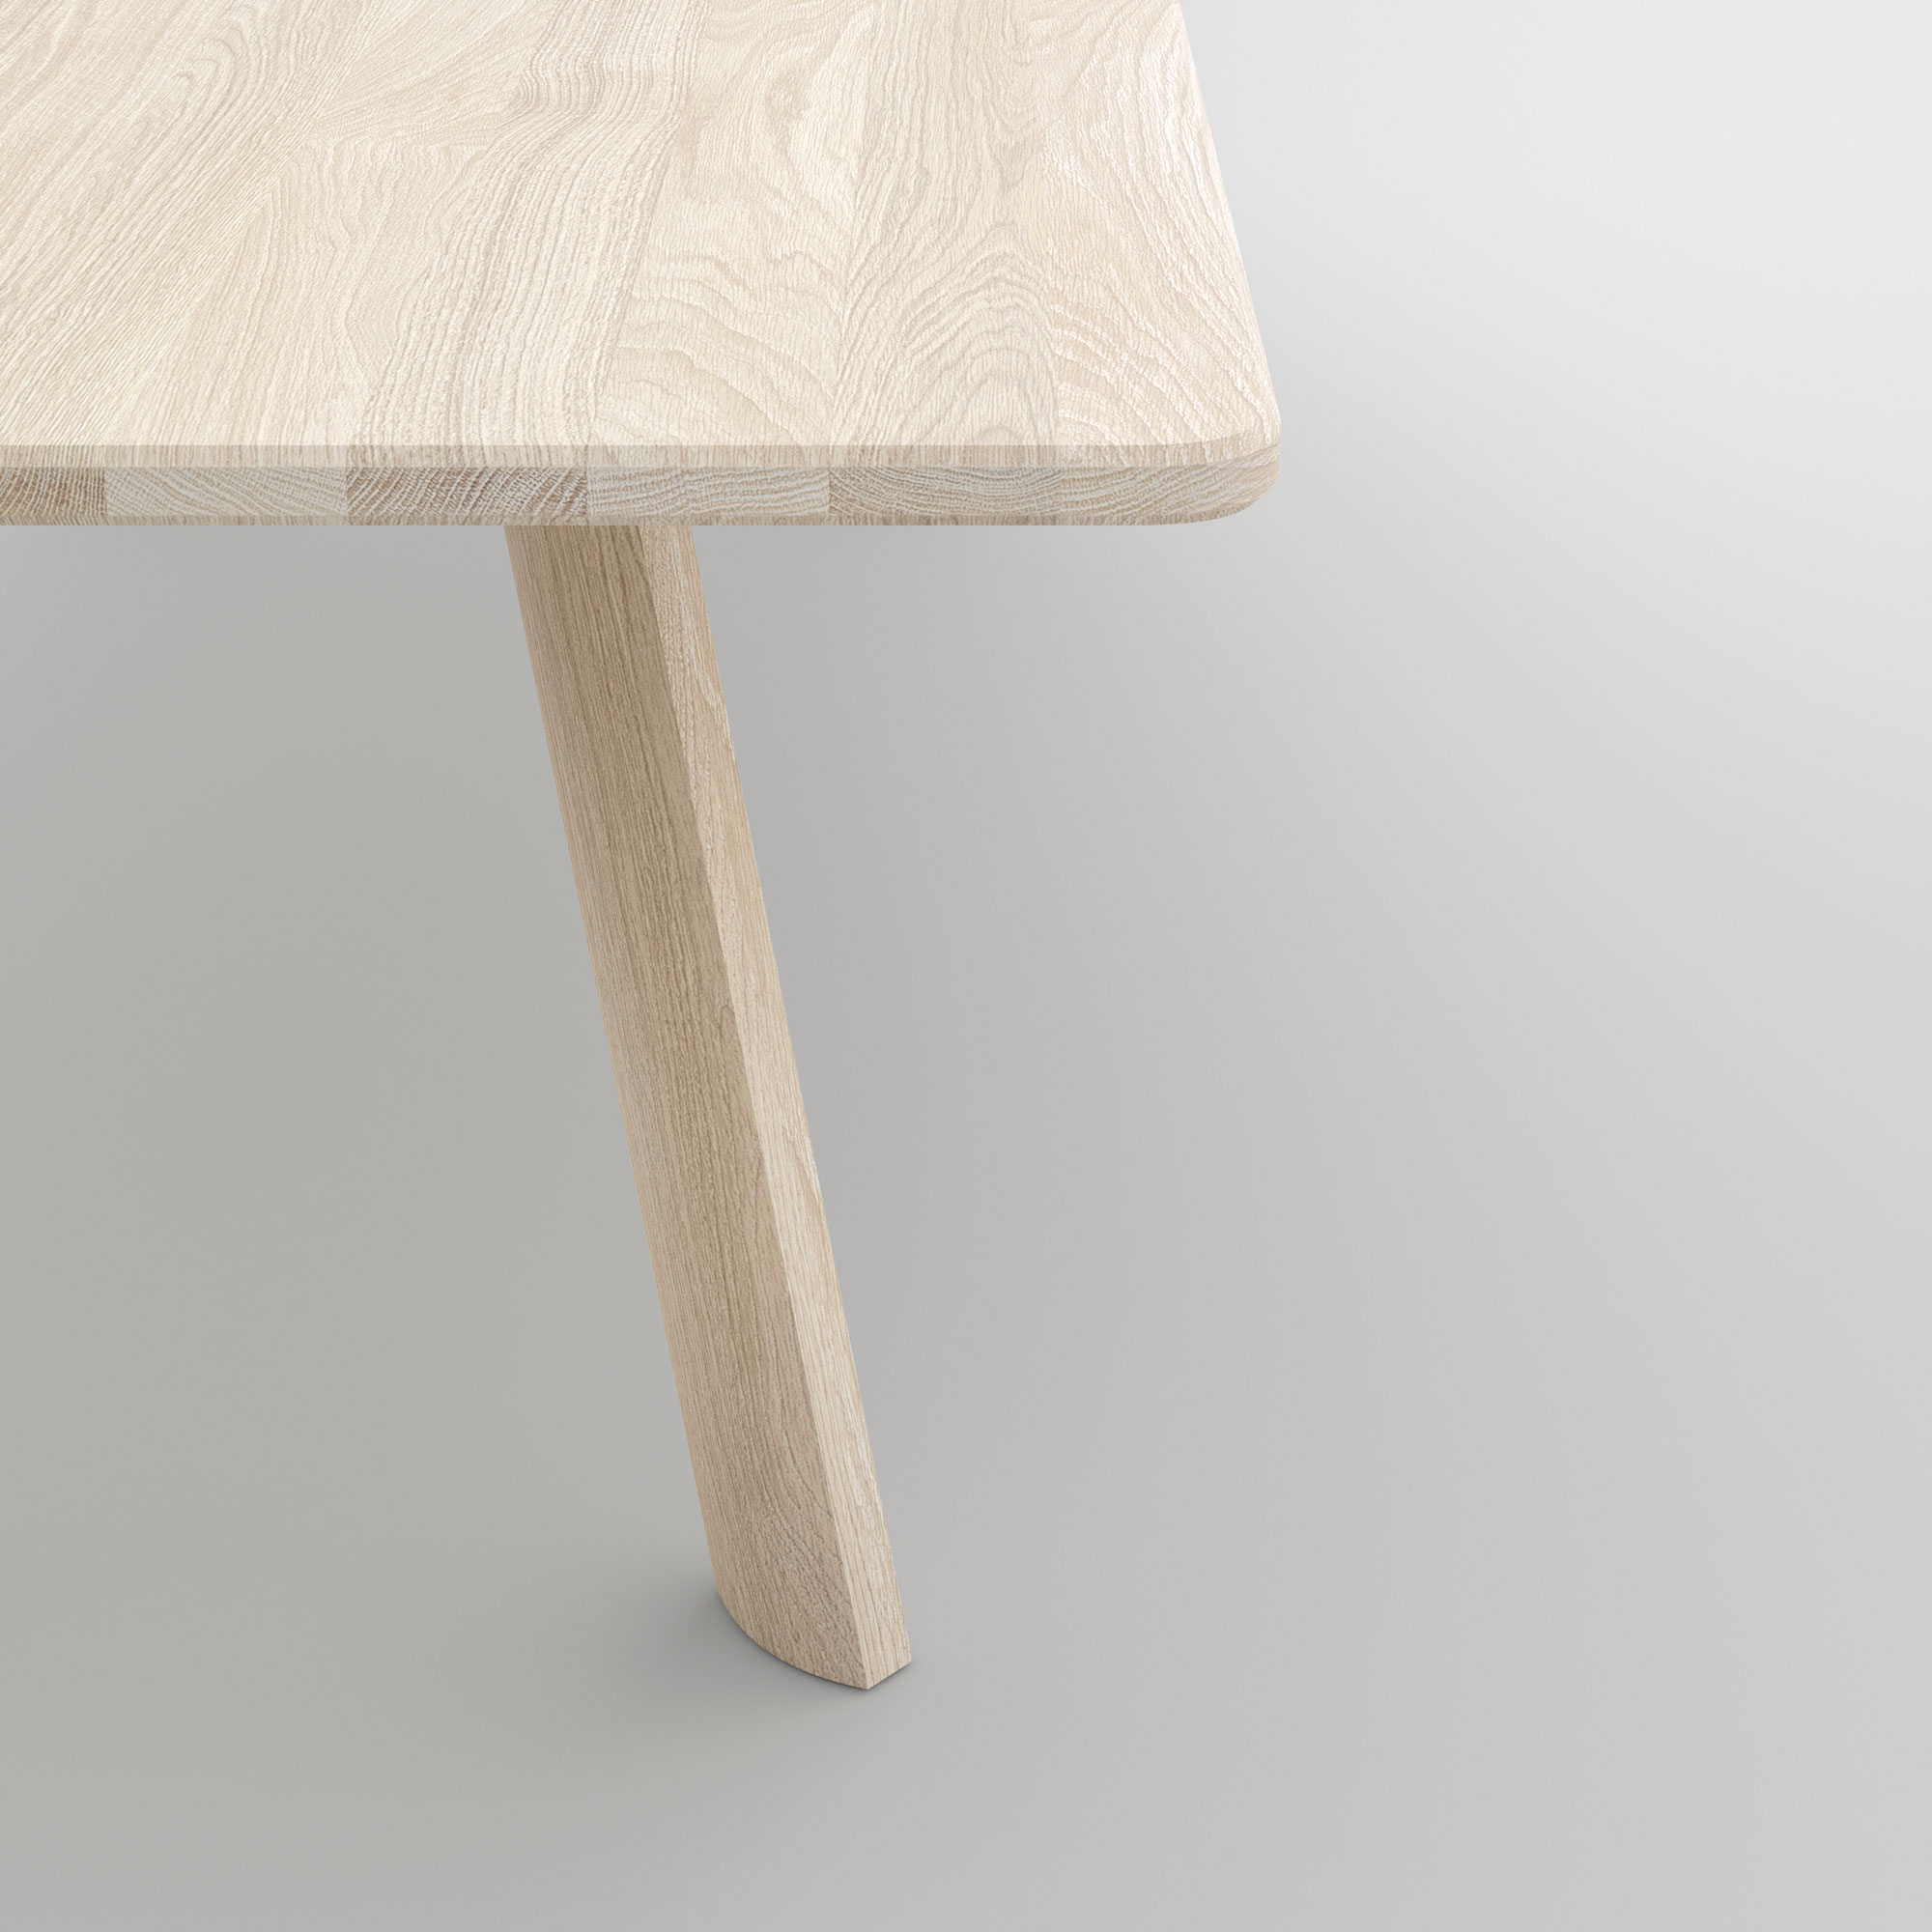 Designer Dining Table LARGUS cam4 custom made in solid wood by vitamin design